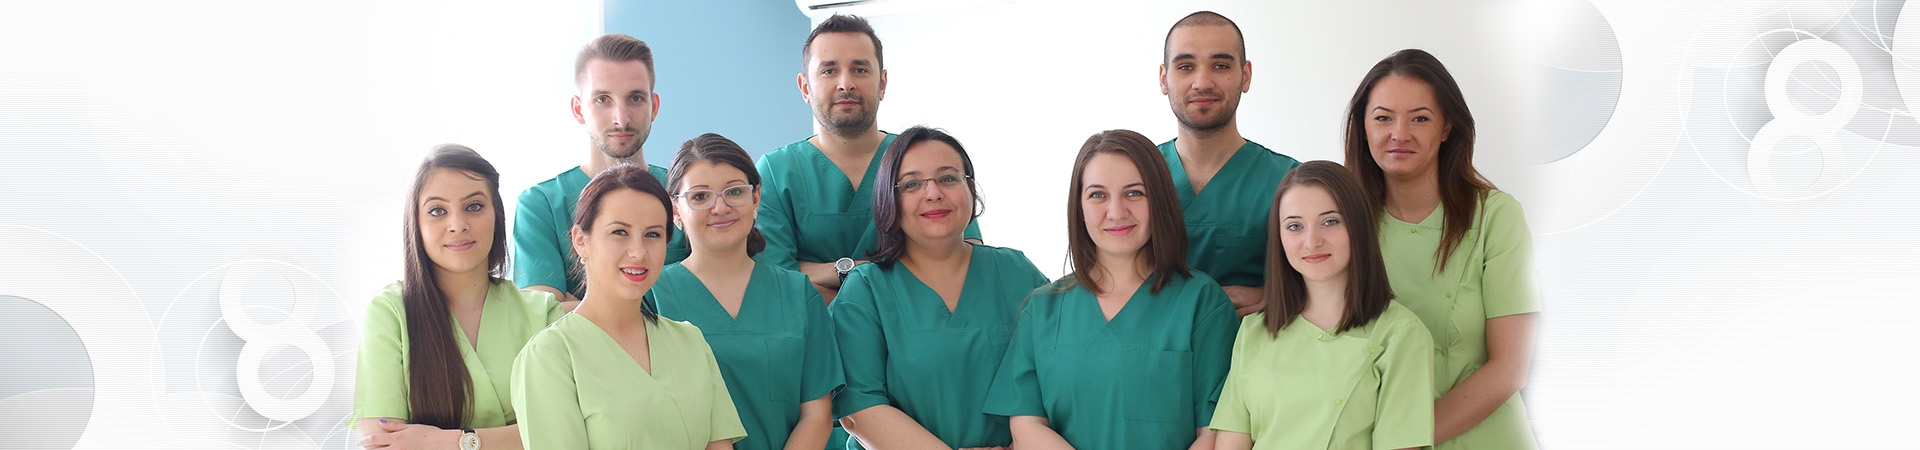 Dental Technicians